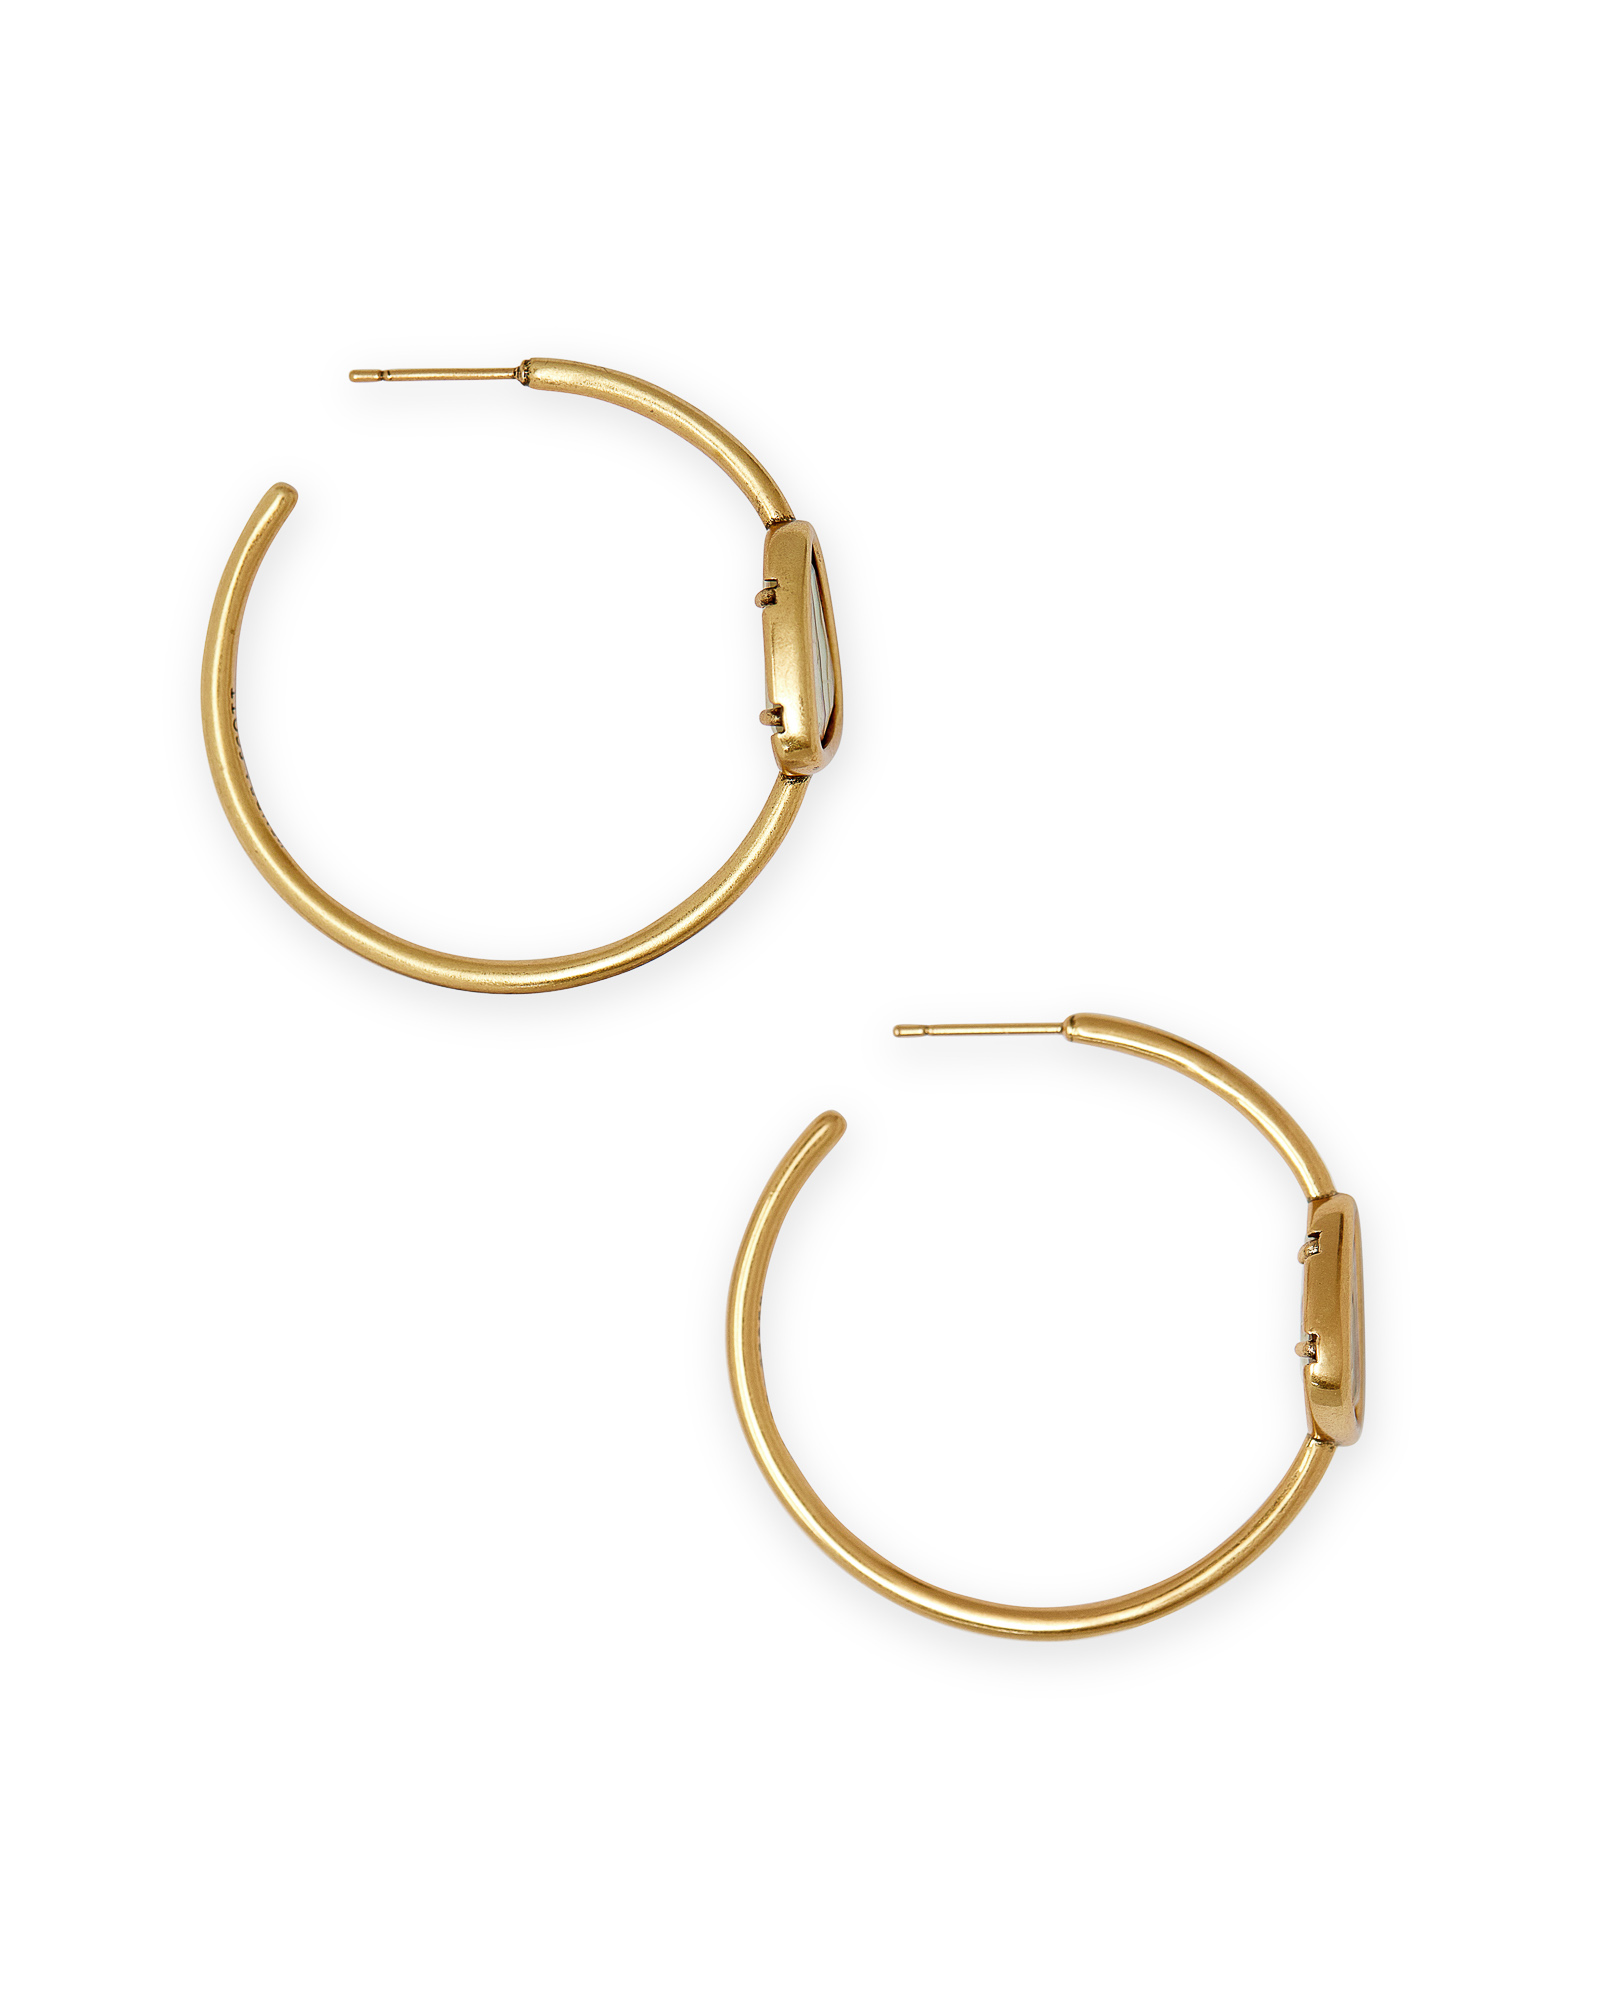 Margot Vintage Gold Hoop Earrings in White Abalone